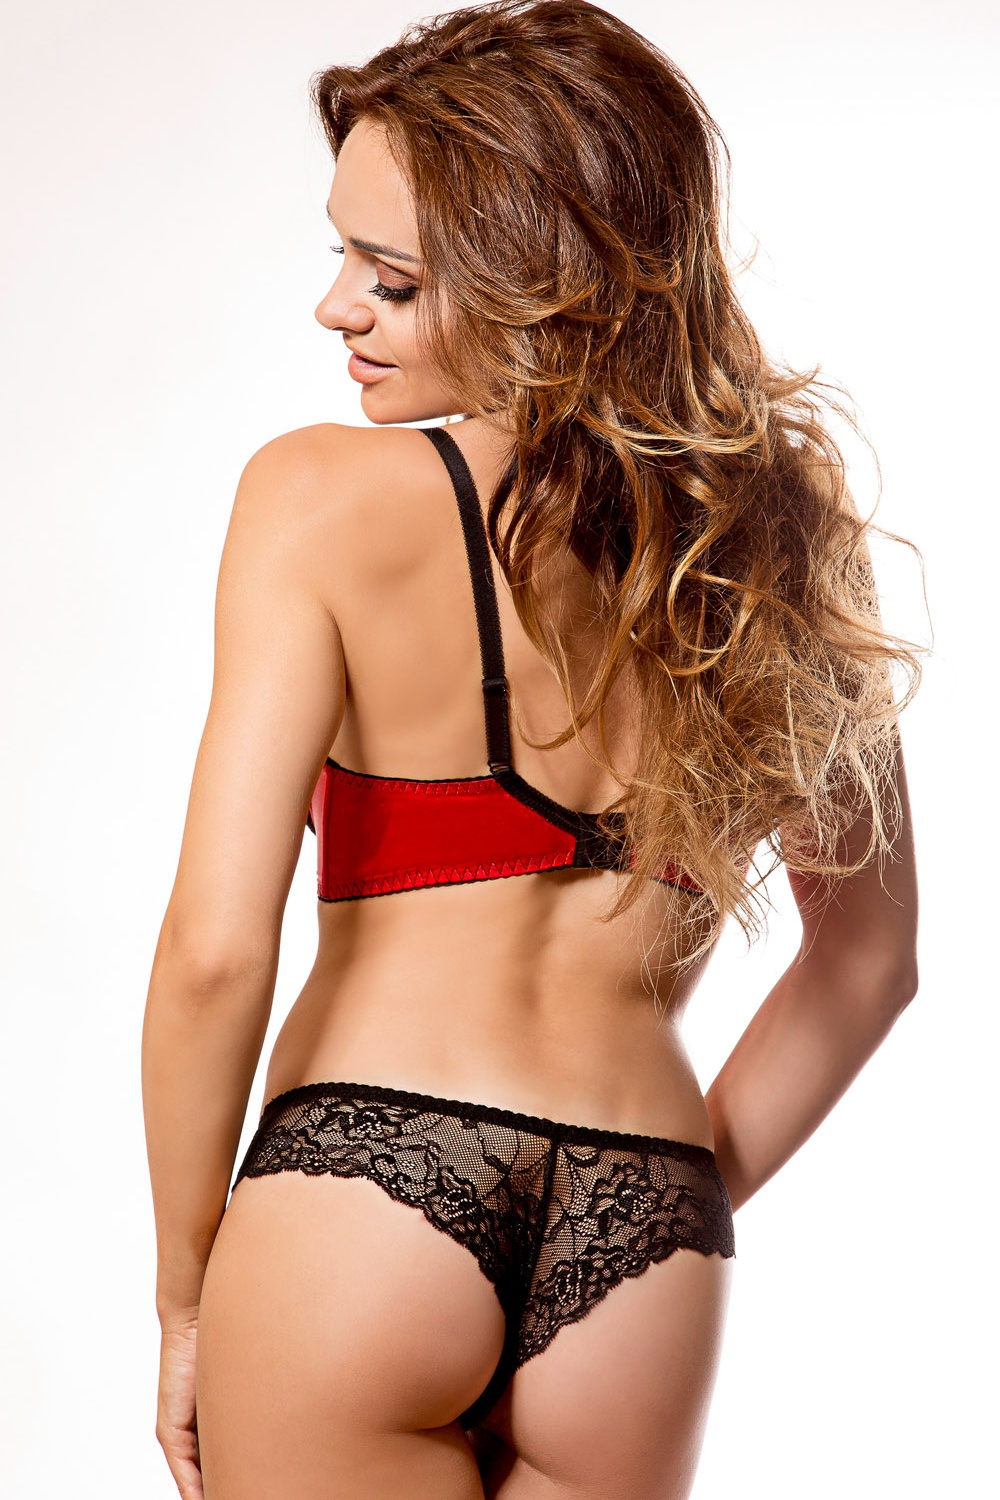 Chiloti model 73639 PariPari Lingerie